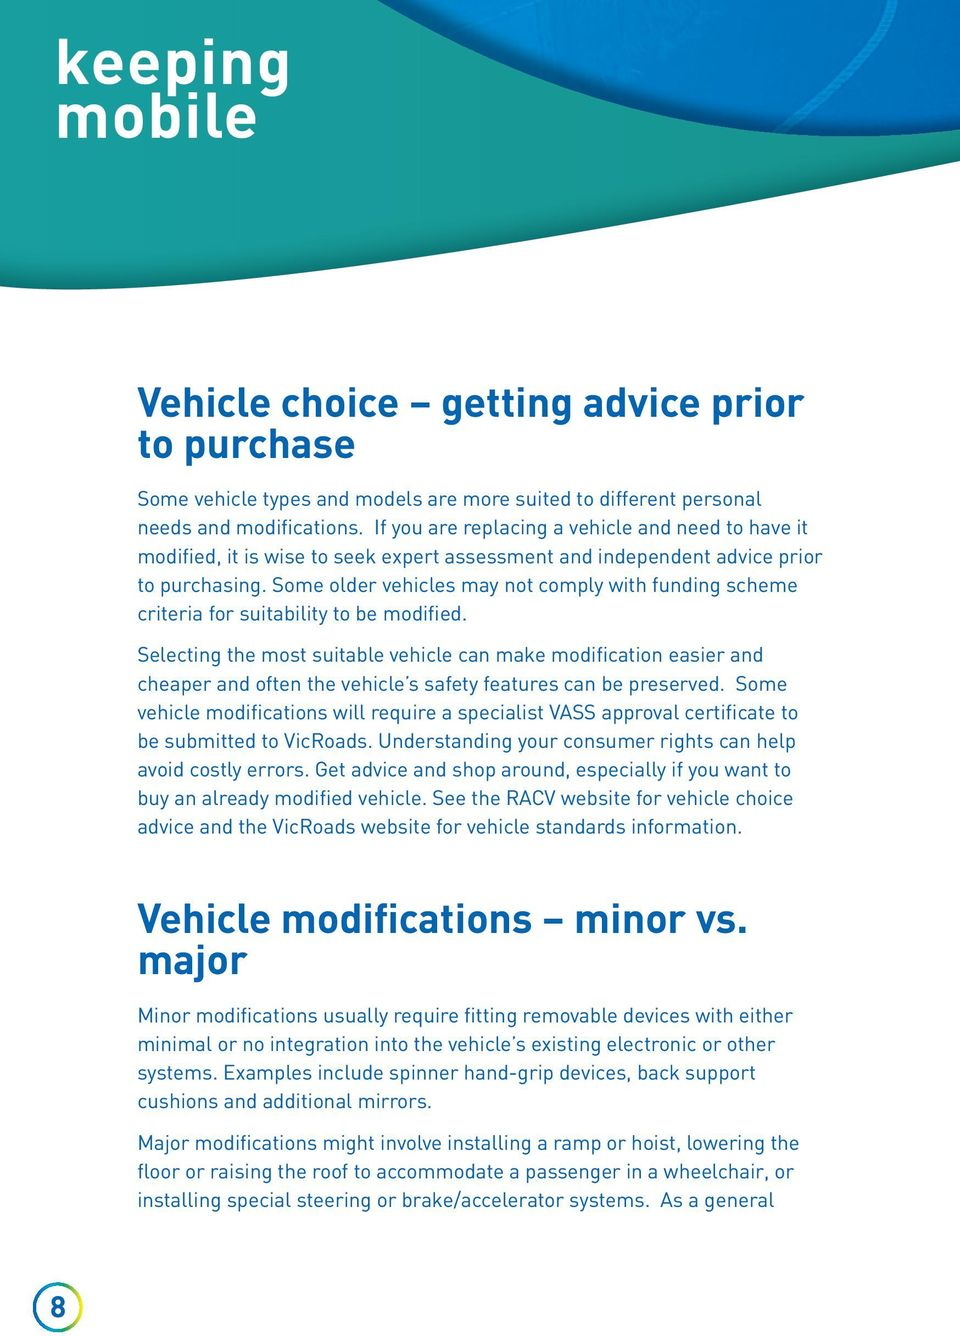 Some older vehicles may not comply with funding scheme criteria for suitability to be modified.